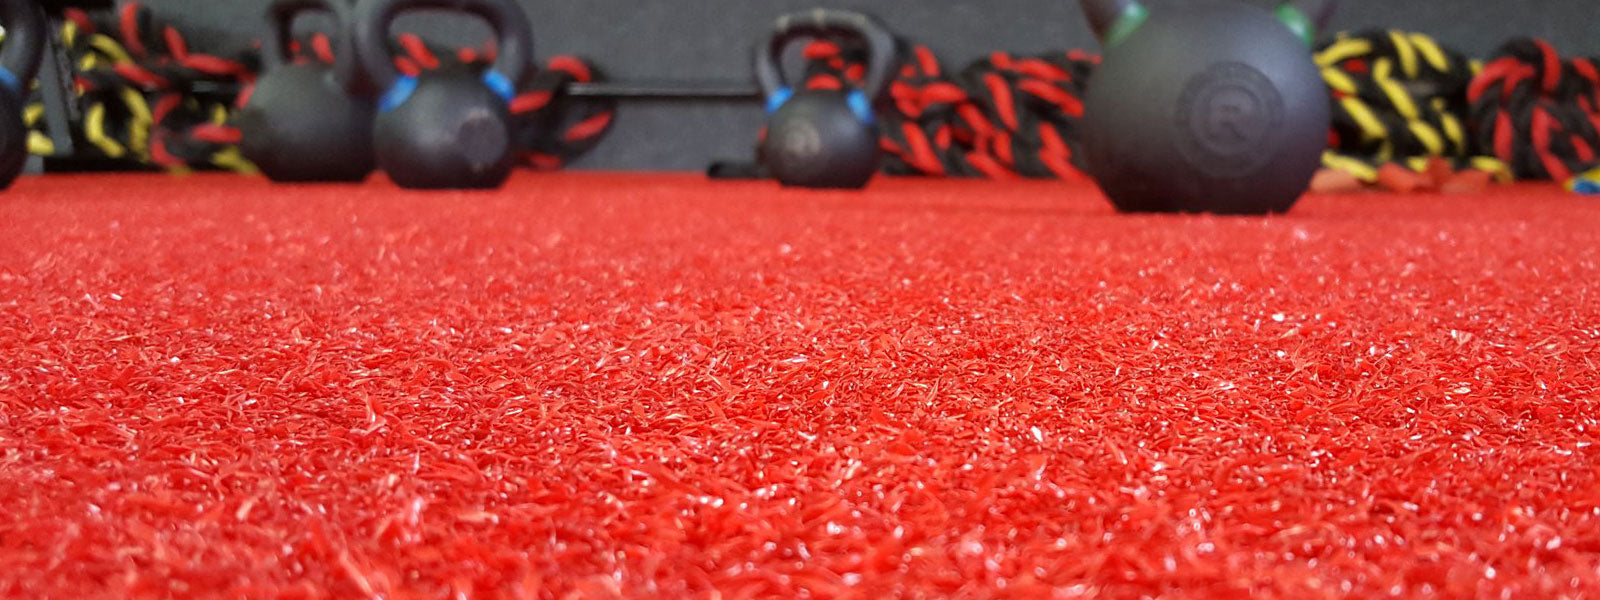 Fitfloors Rubber Gym Flooring Rolls Lowest Prices